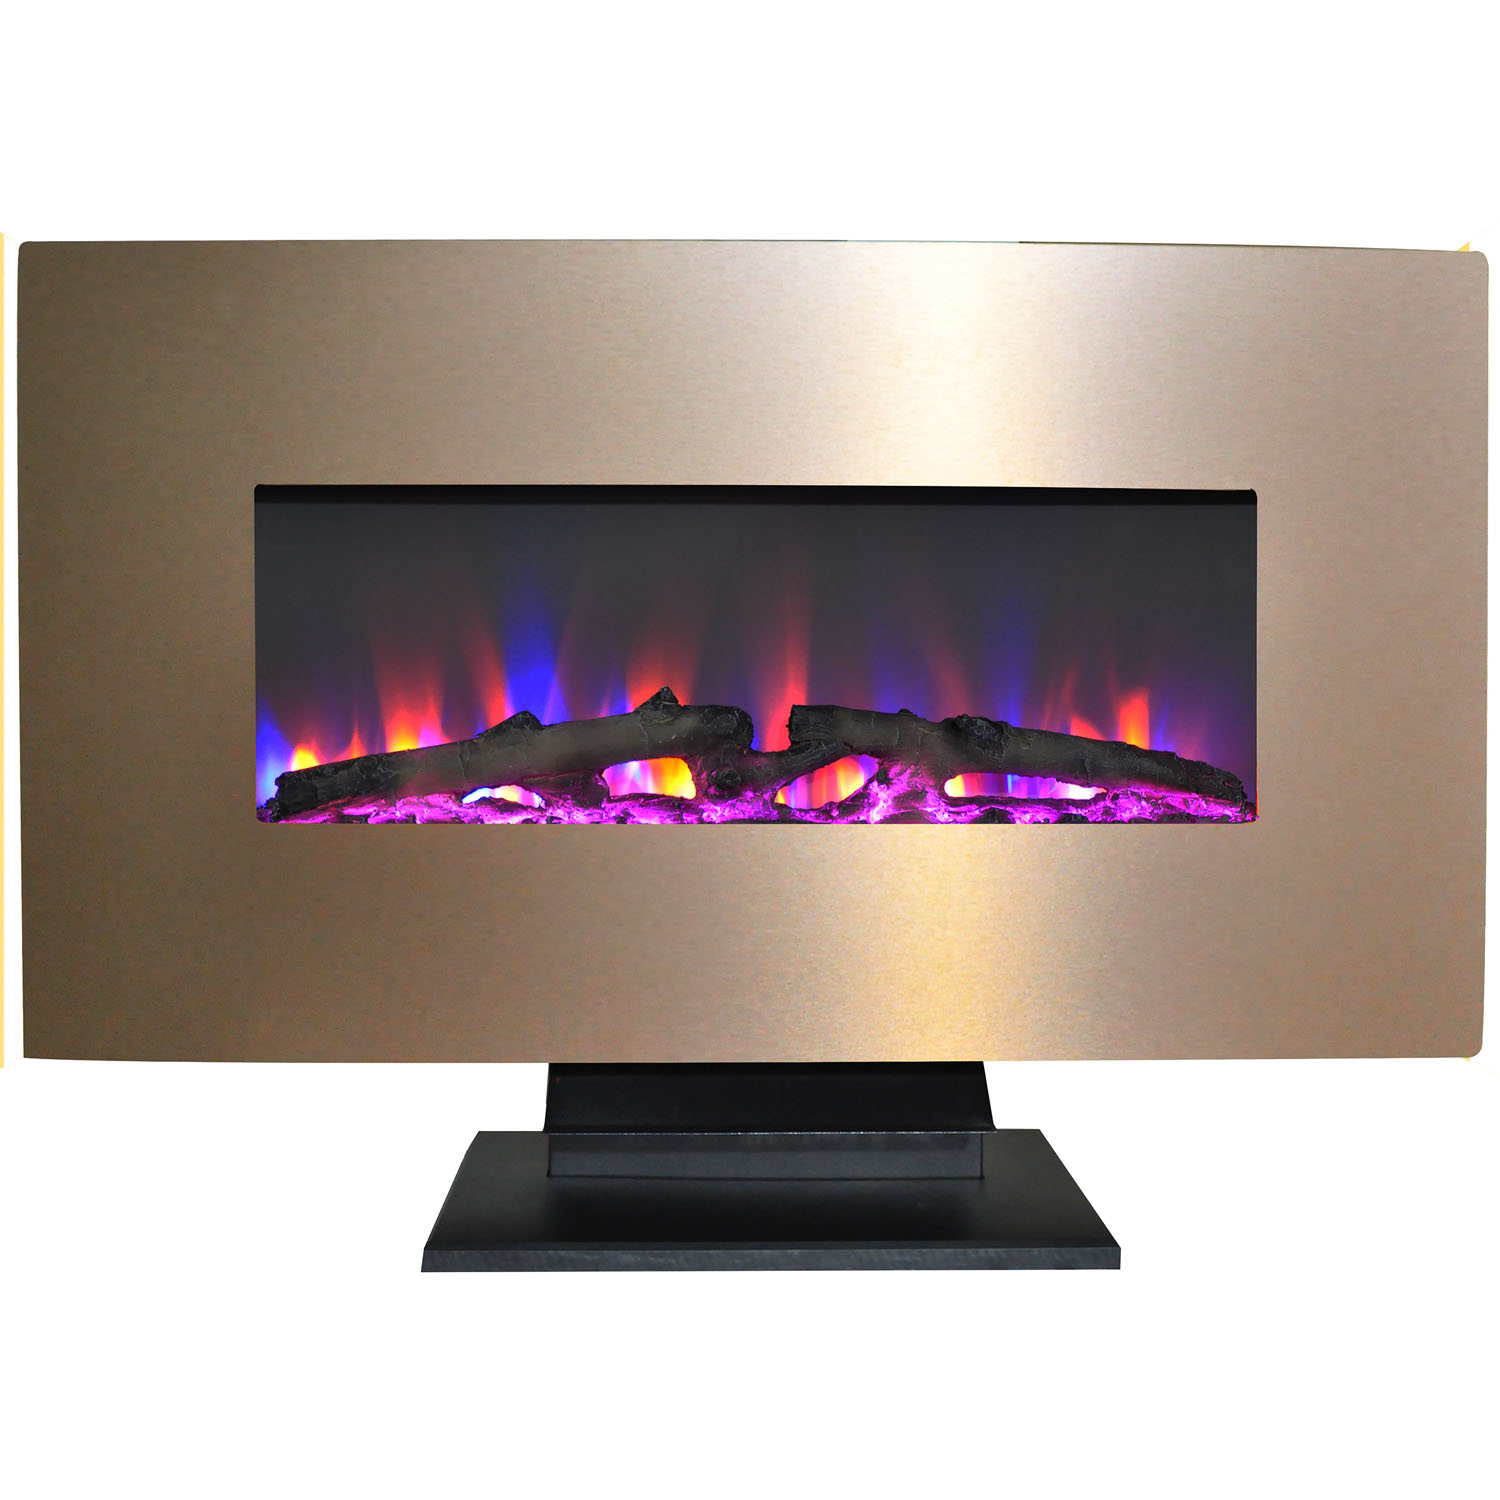 "Cambridge 36"" Metallic Electric Fireplace Heater with Multi-Color LED Flames and Driftwood Log"